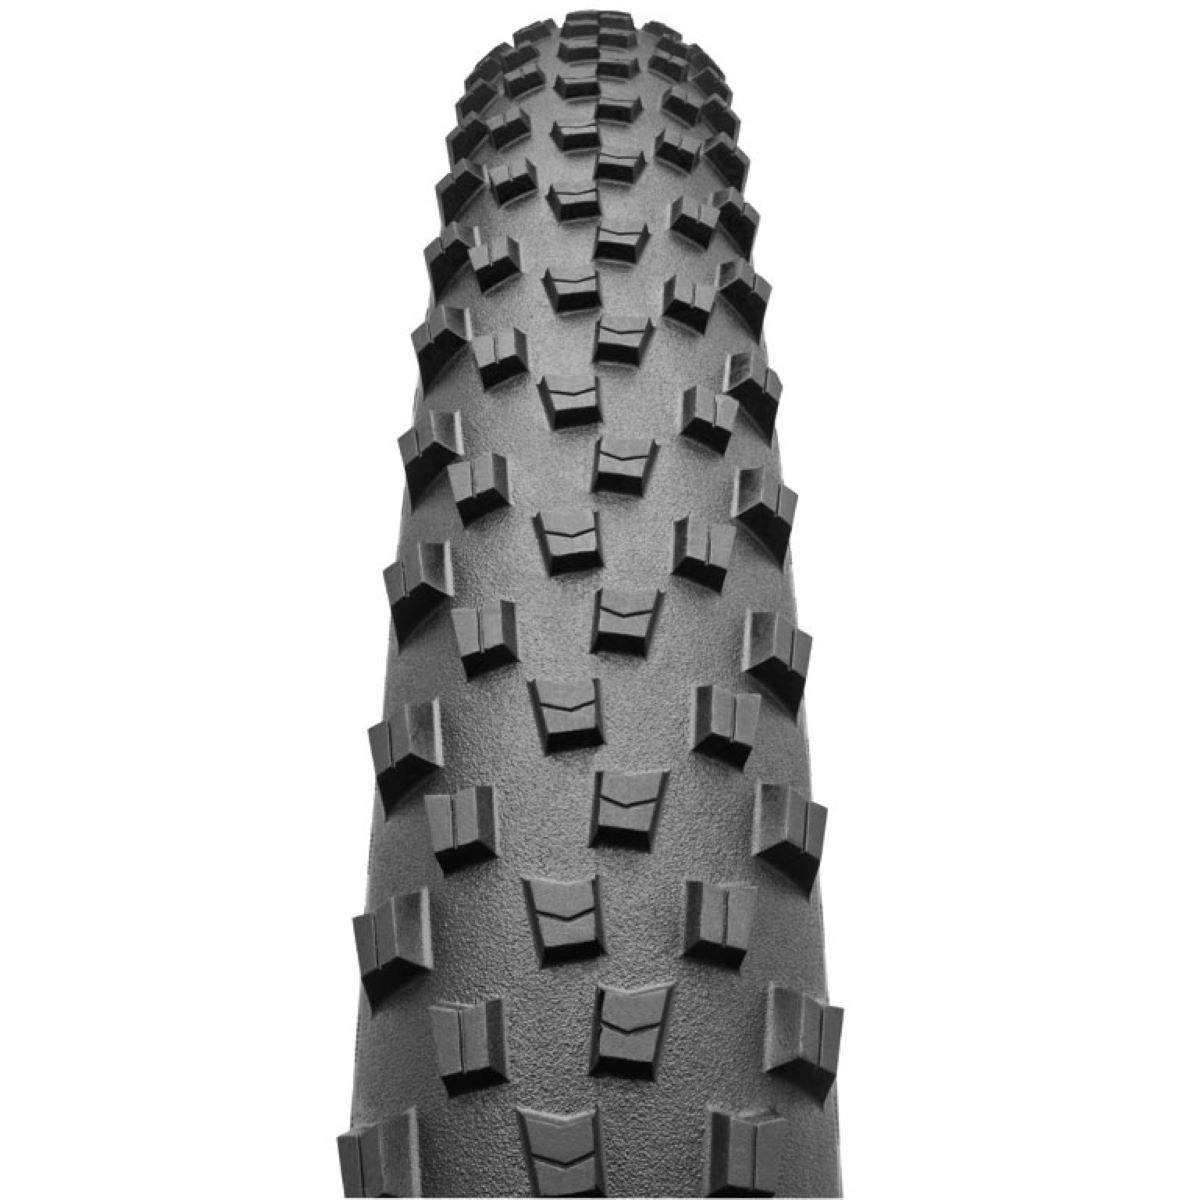 Pneu VTT Continental X King Protection 29 pouces (souple) - 29 x 2.4